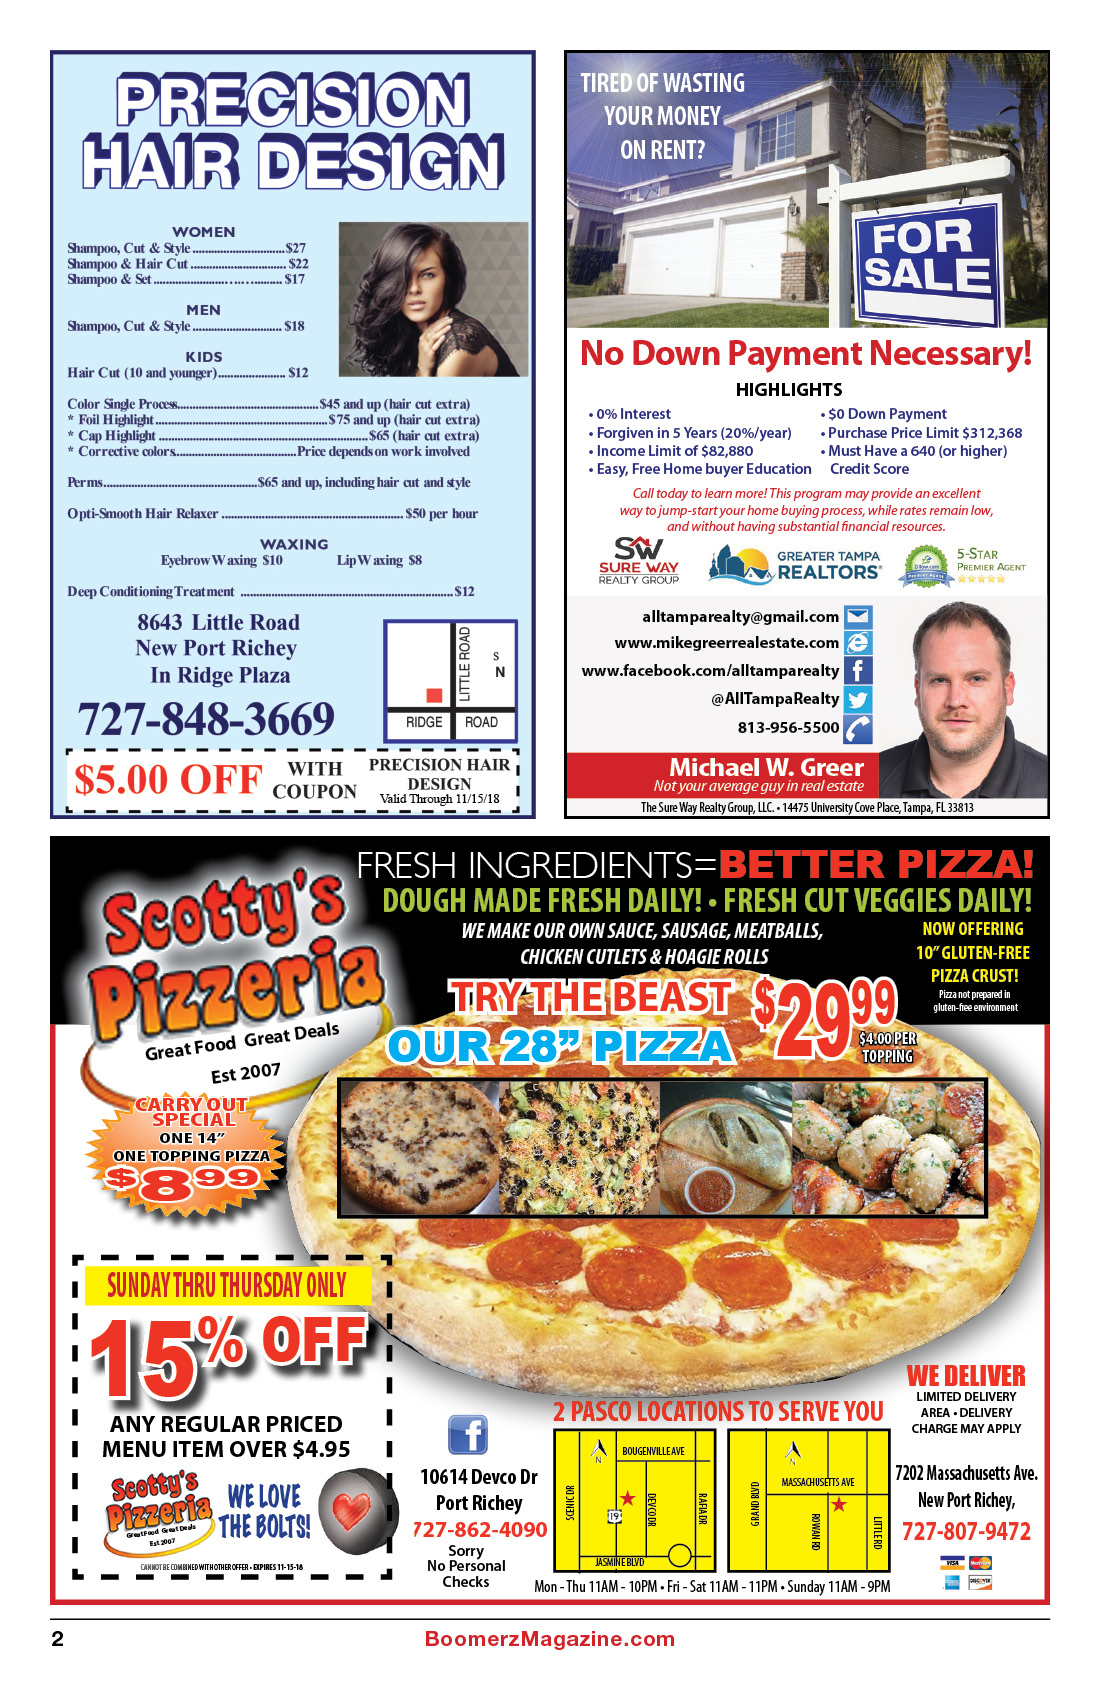 Boomerz Magazine Page 02 Scotty's Pizzeria